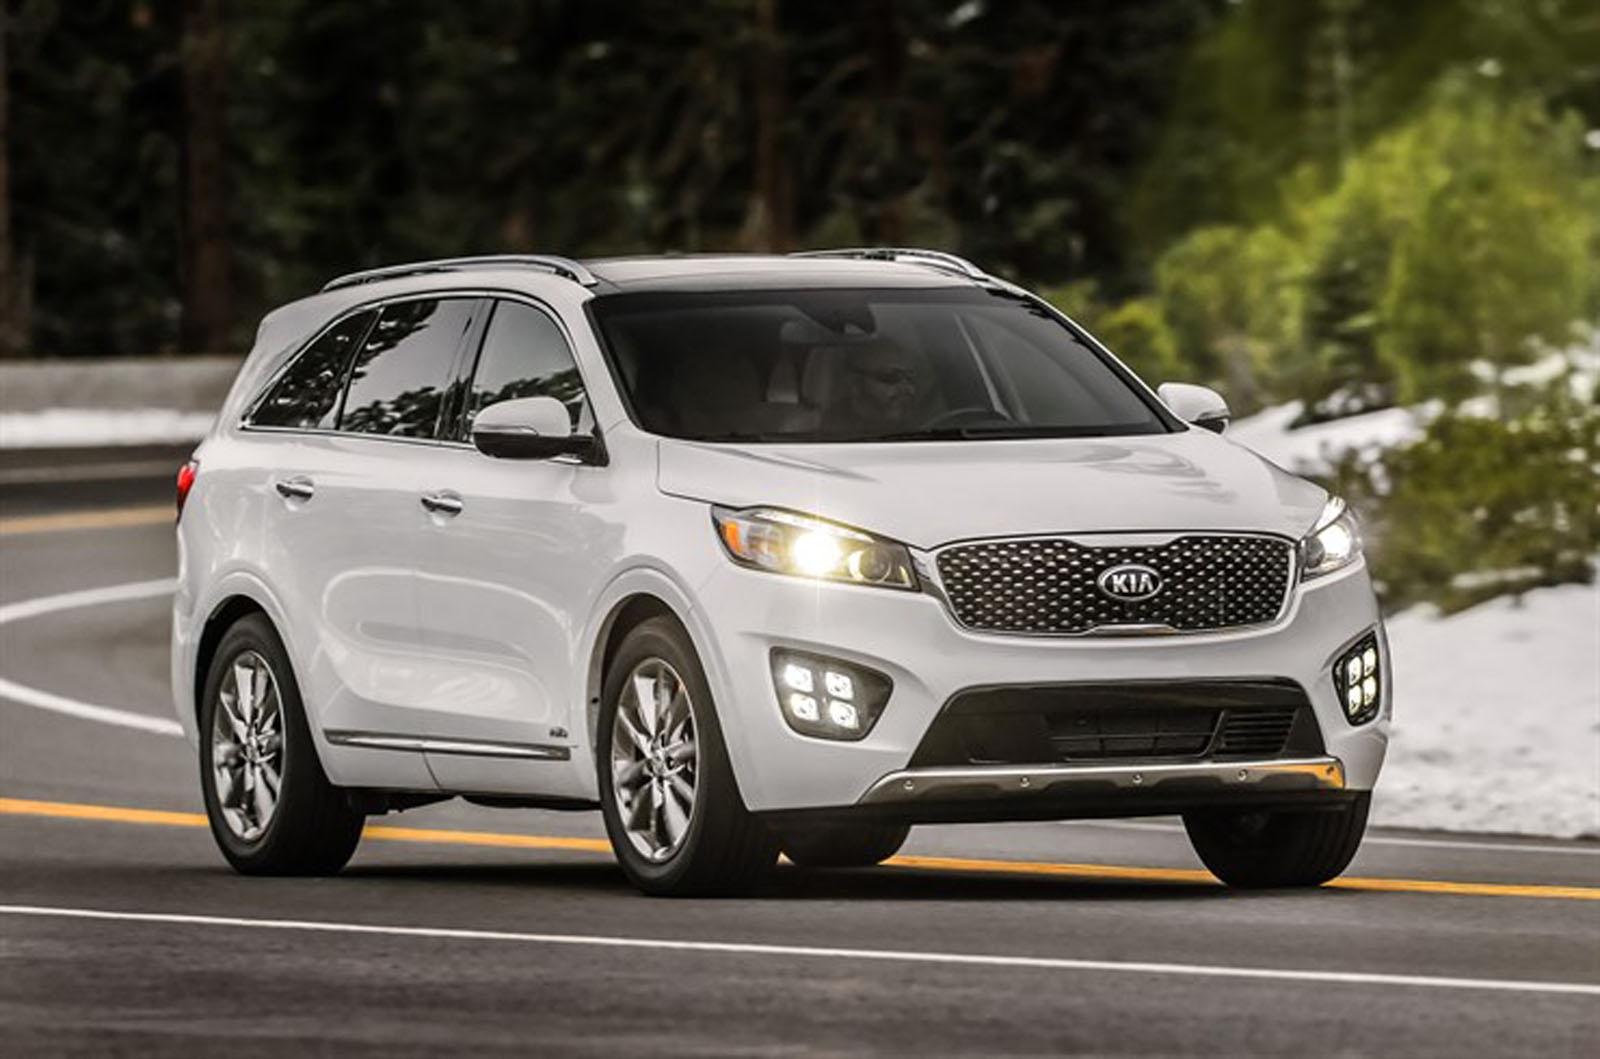 2017 Kia Soo Awd New Cars Used Car Reviews And Pricing